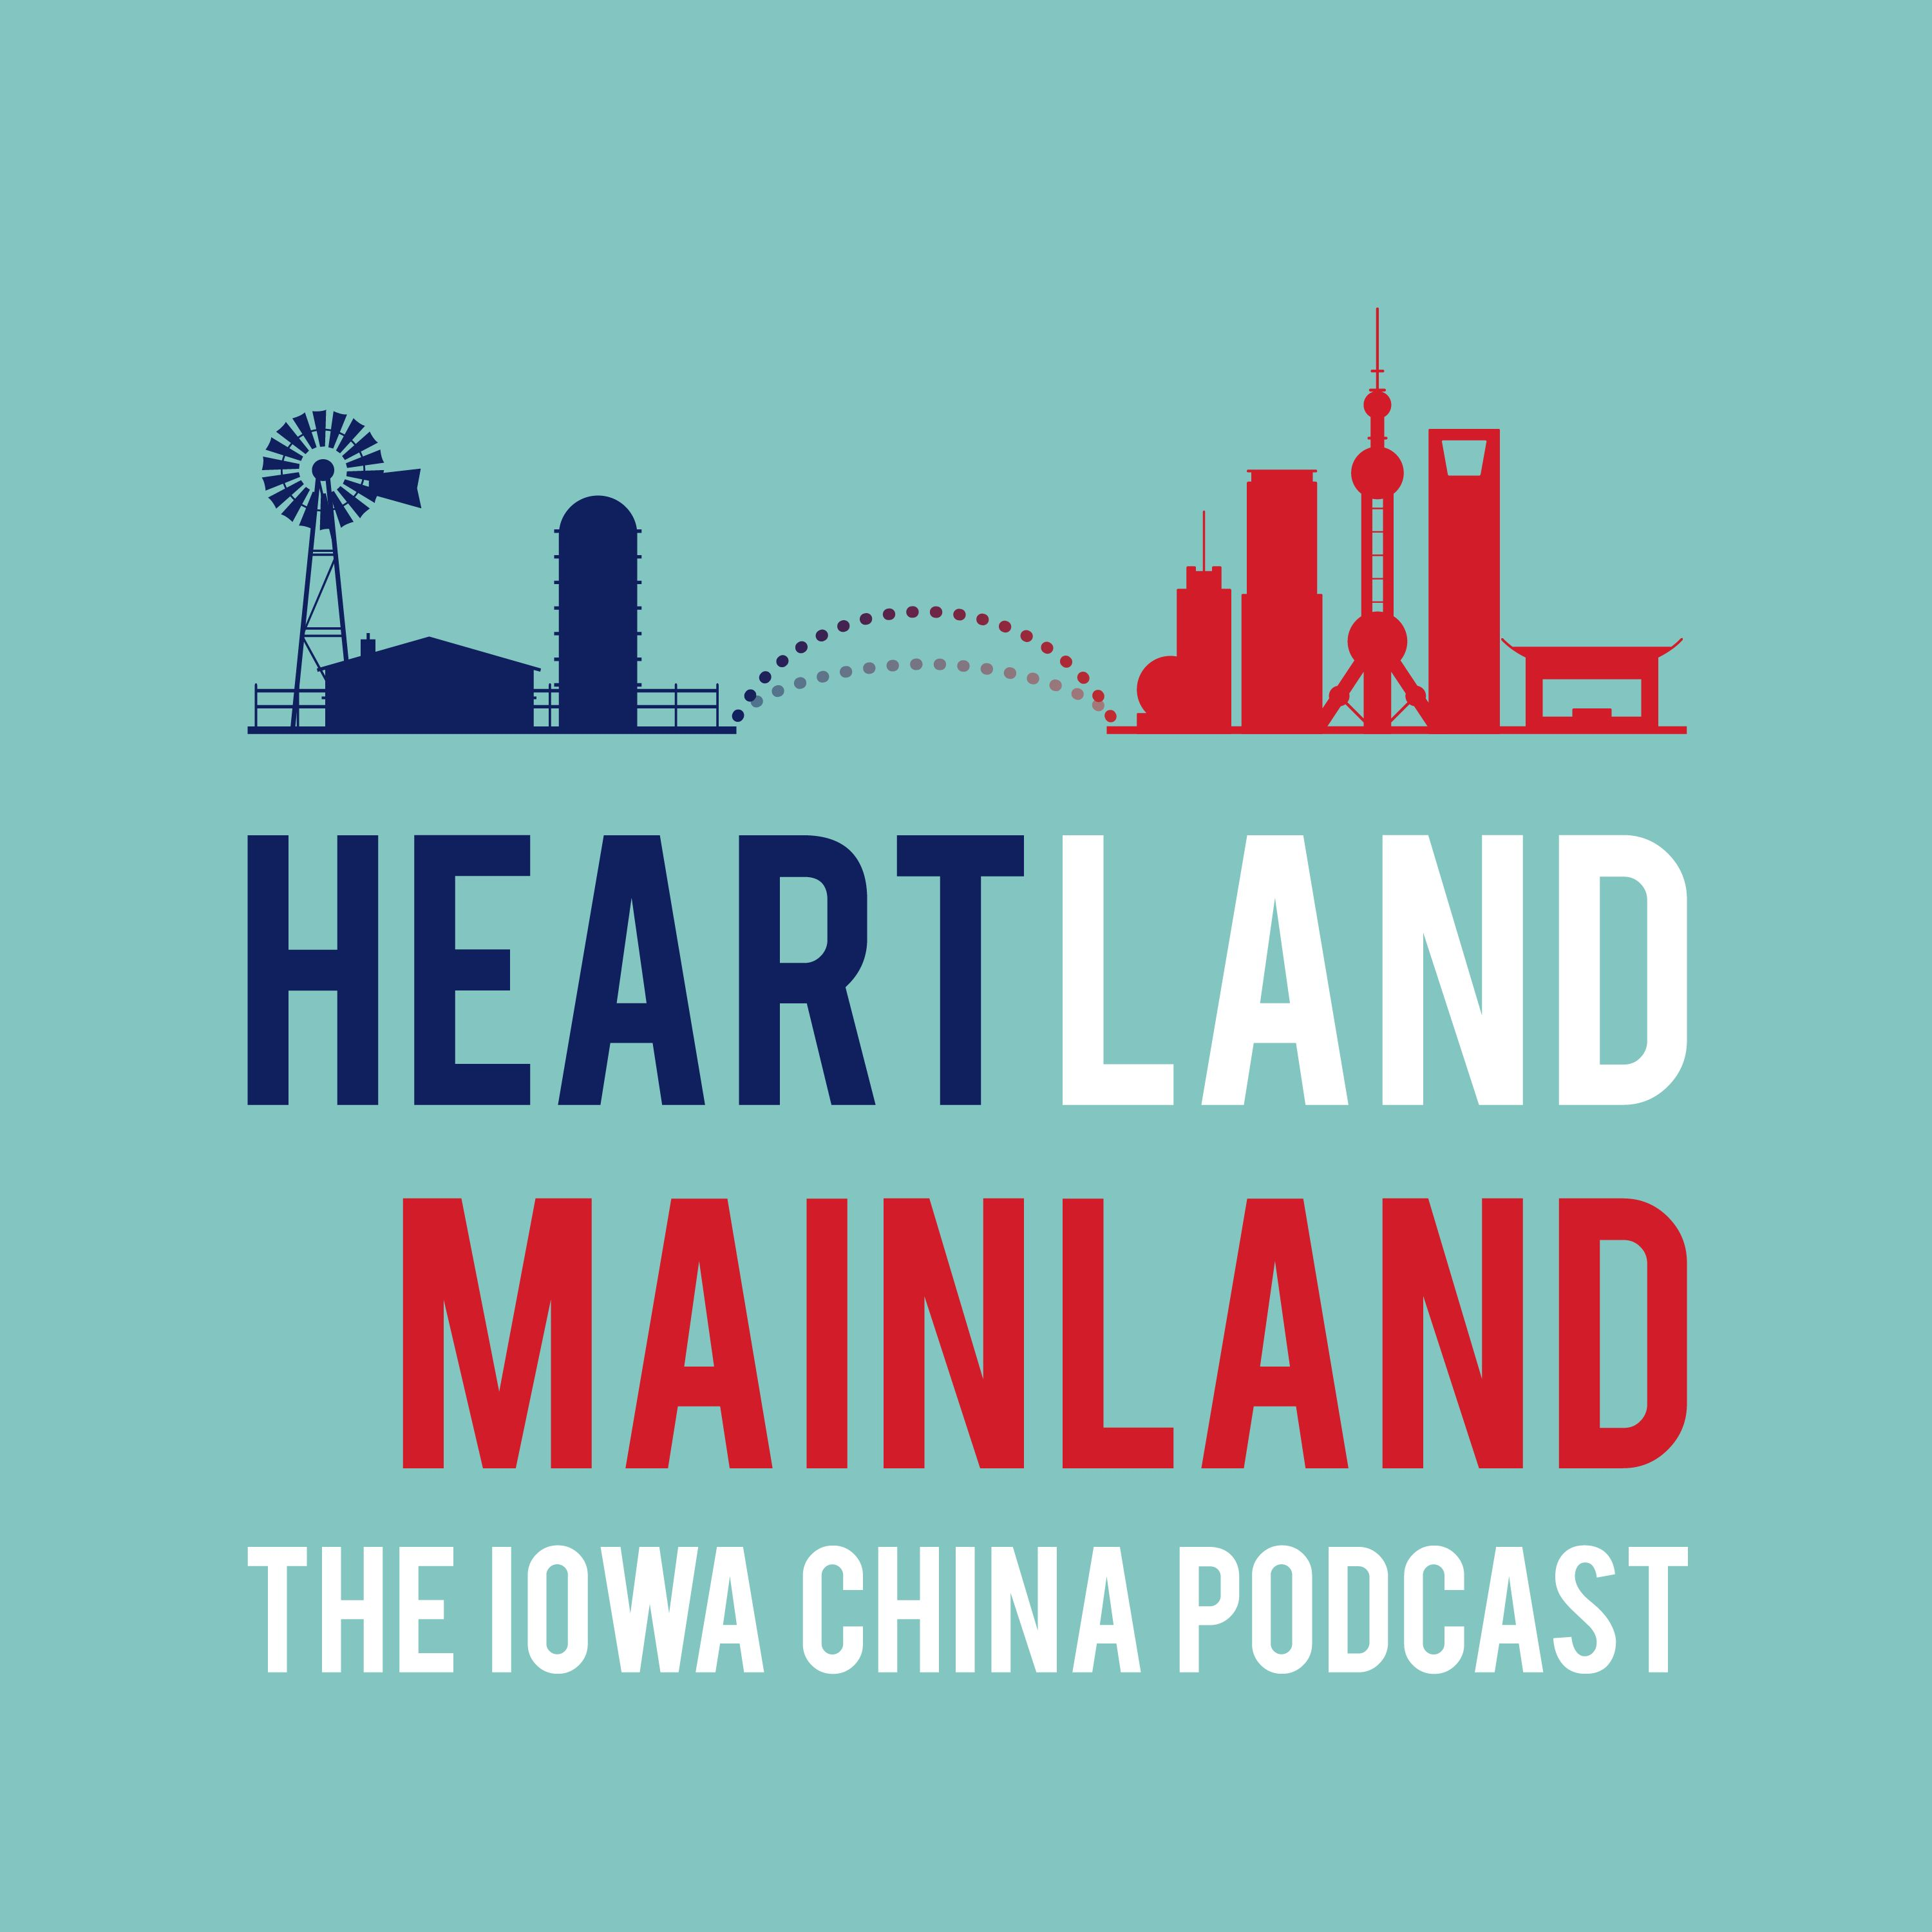 Heartland Mainland: The Iowa China Podcast